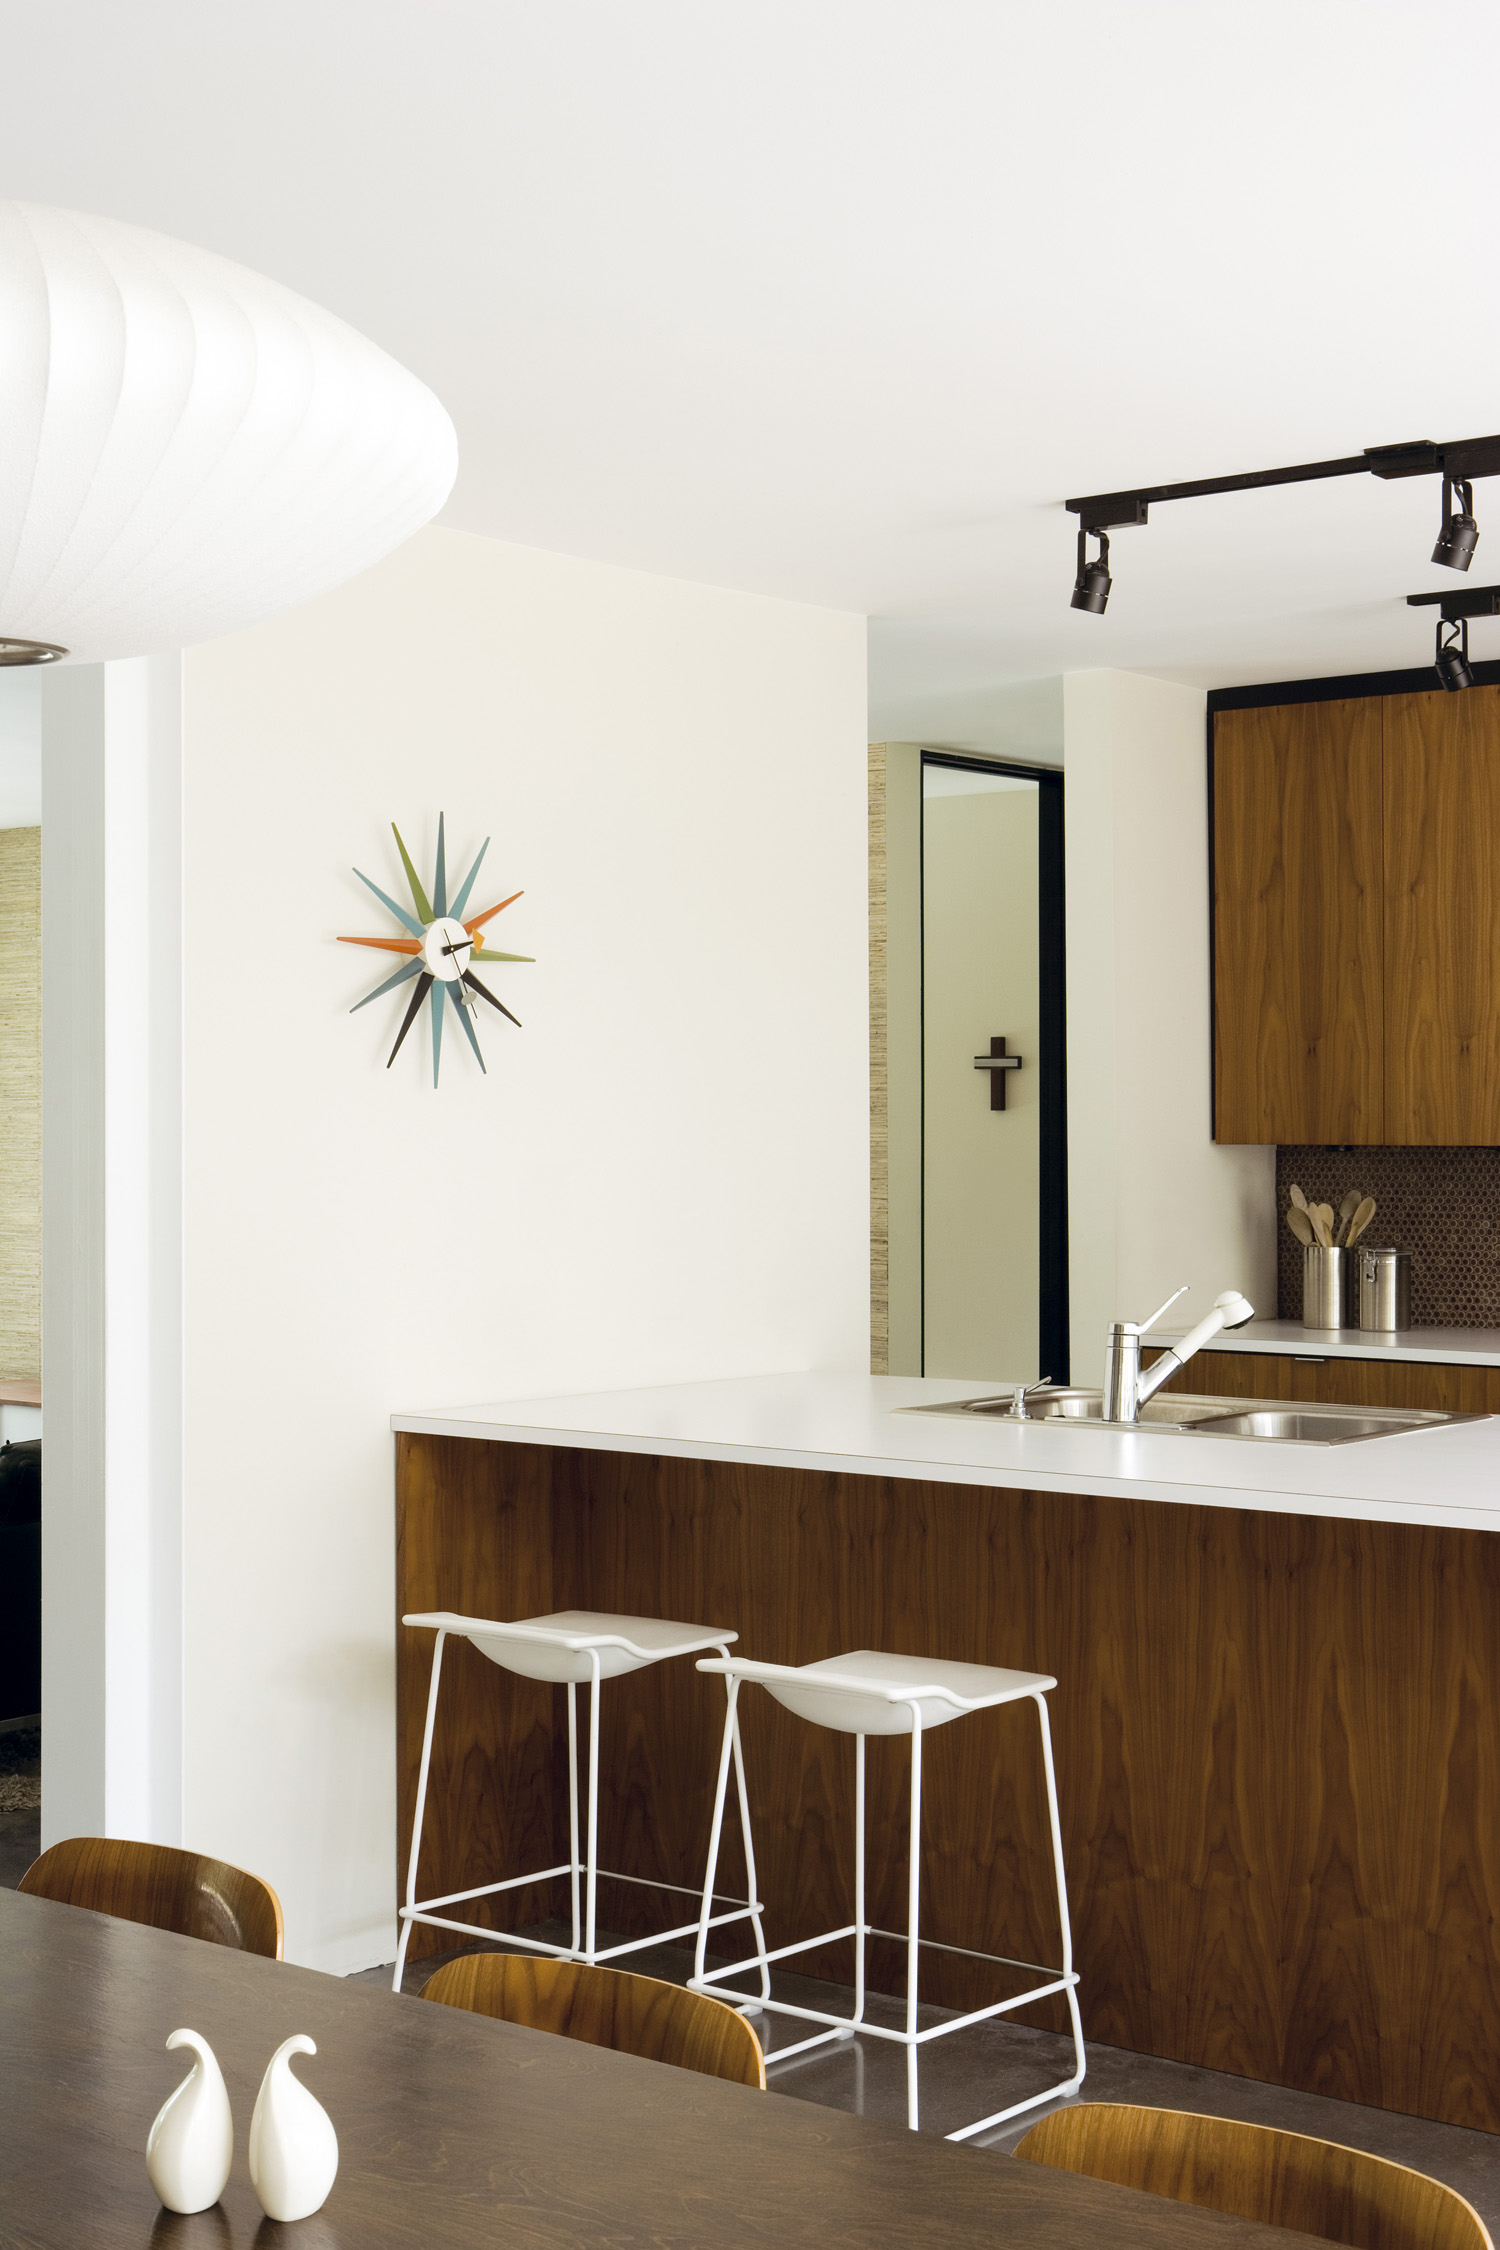 American diner: The kitchen at the end of the living room features sleek walnut cabinets and a multicoloured George Nelson 'Sunburst' clock